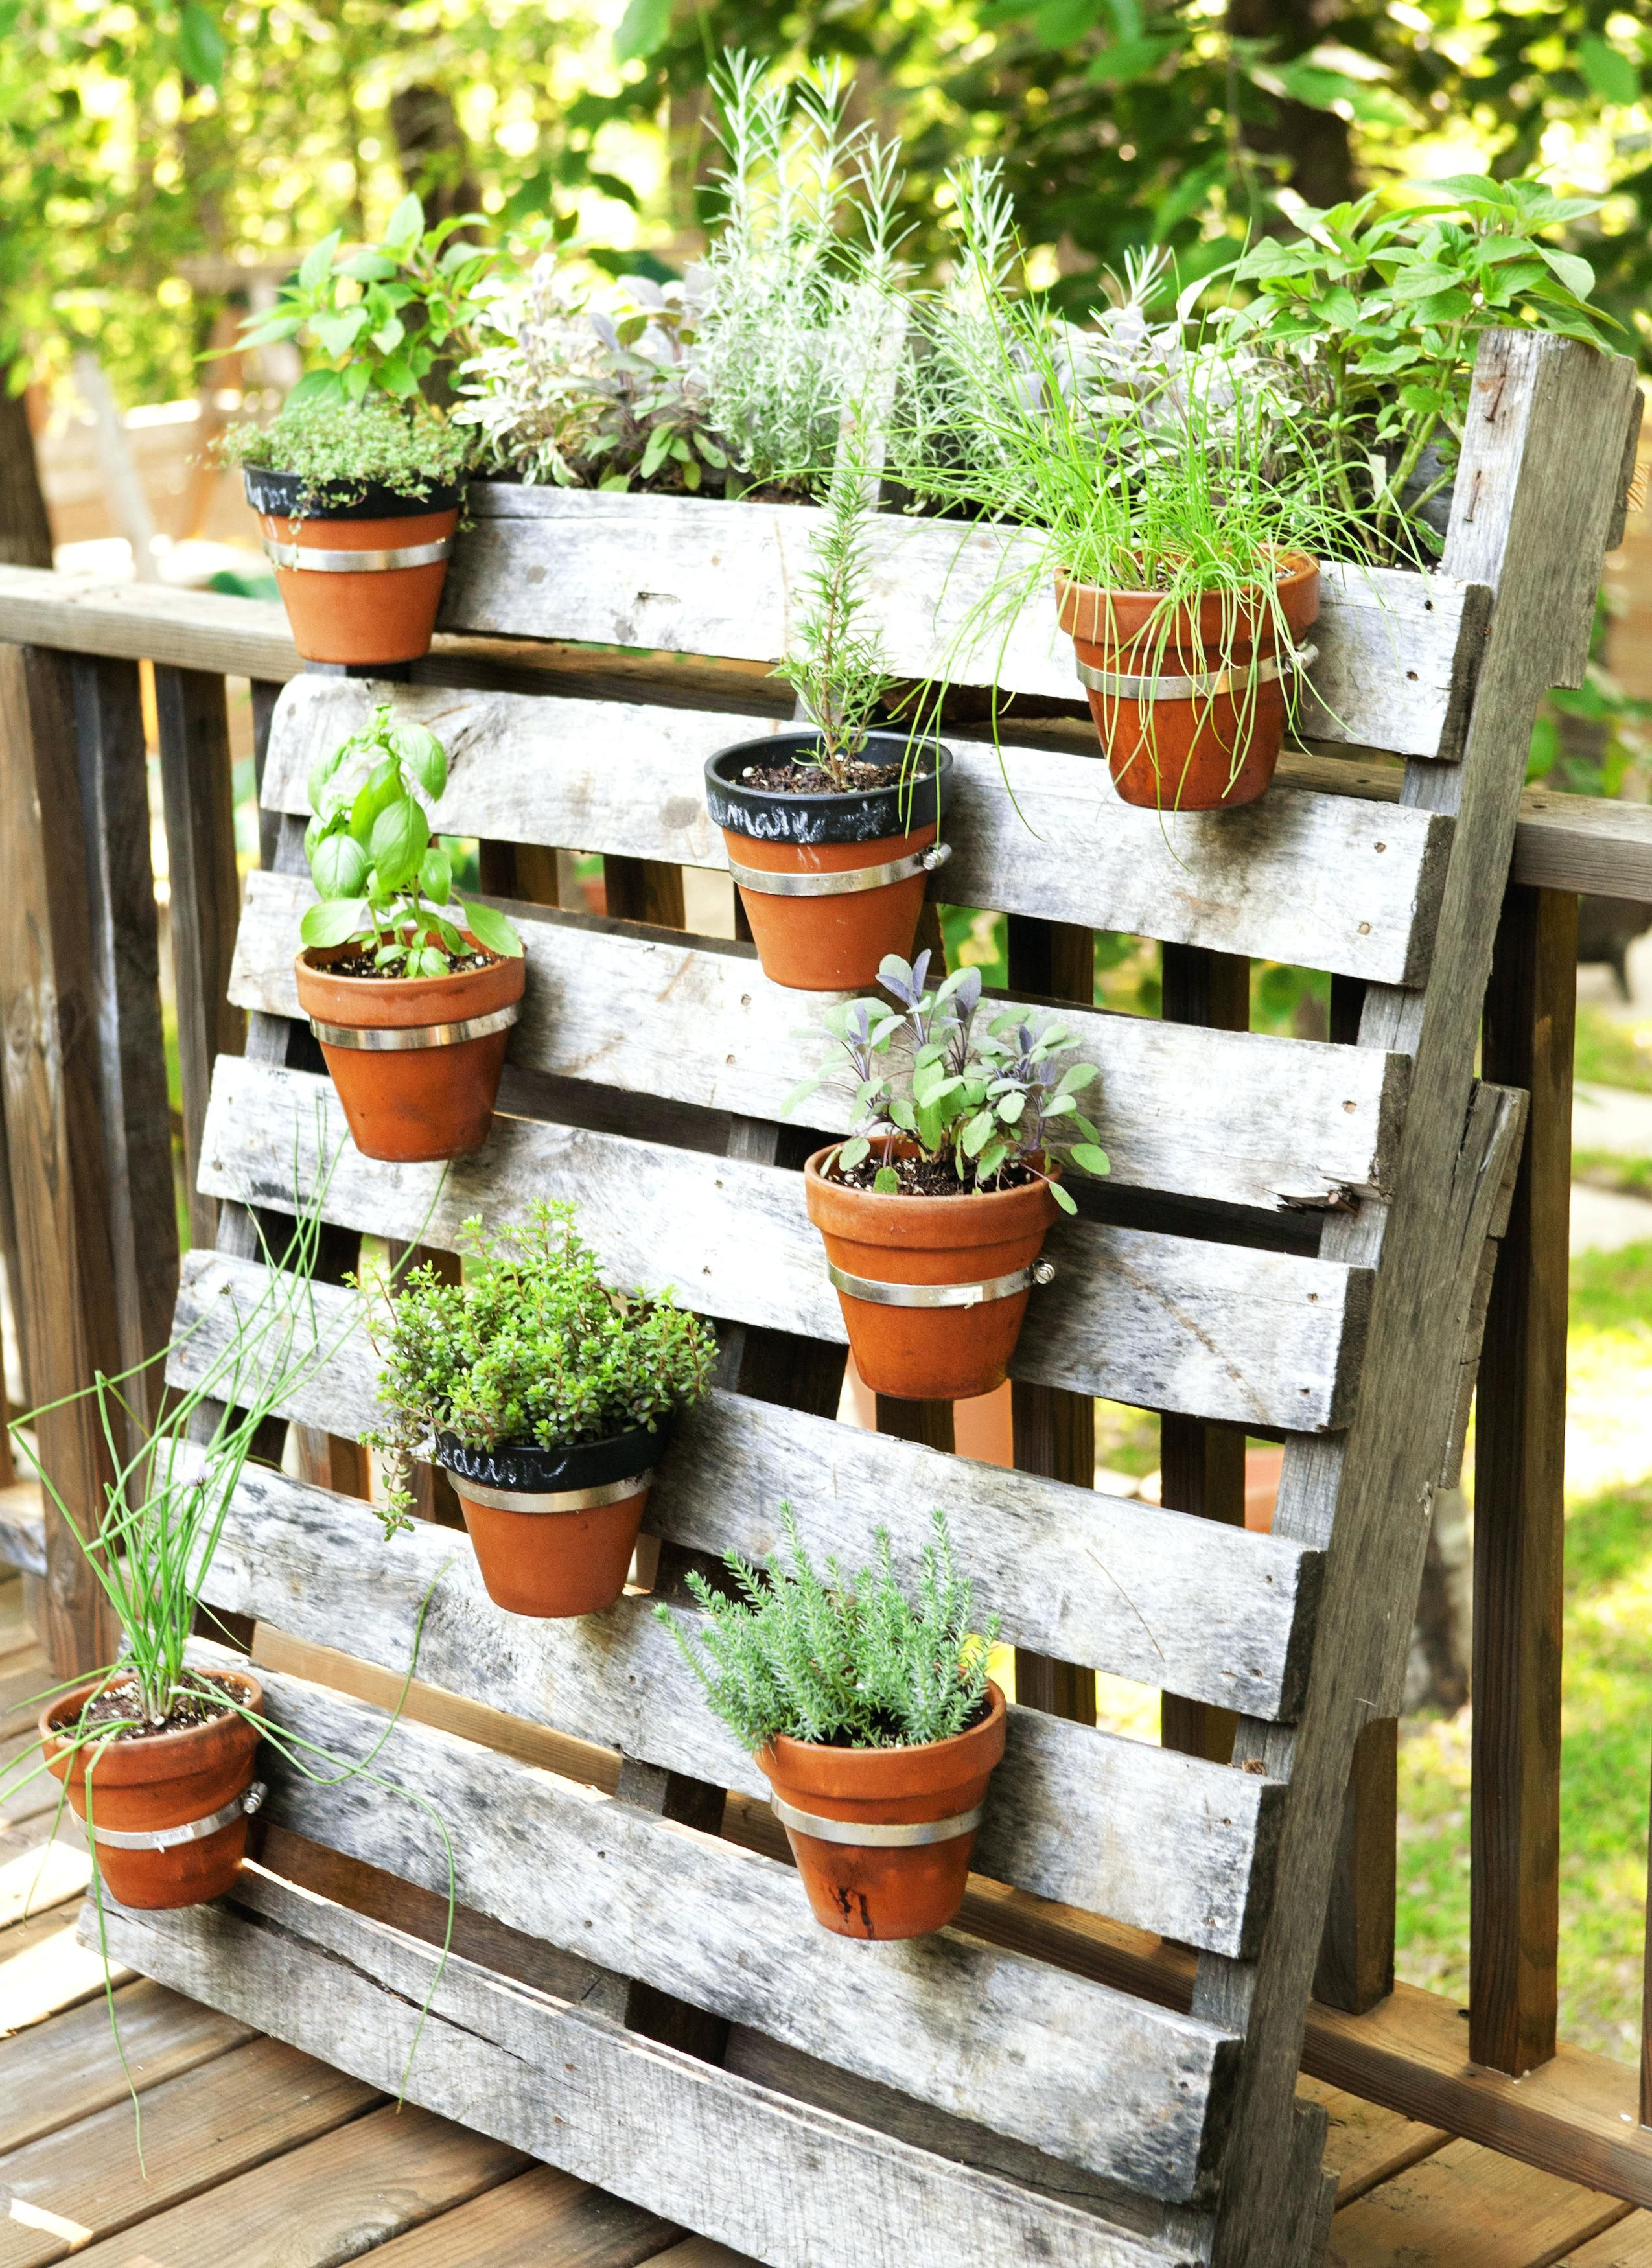 Vertical Garden Ideas To Get The Most Of The Space Small